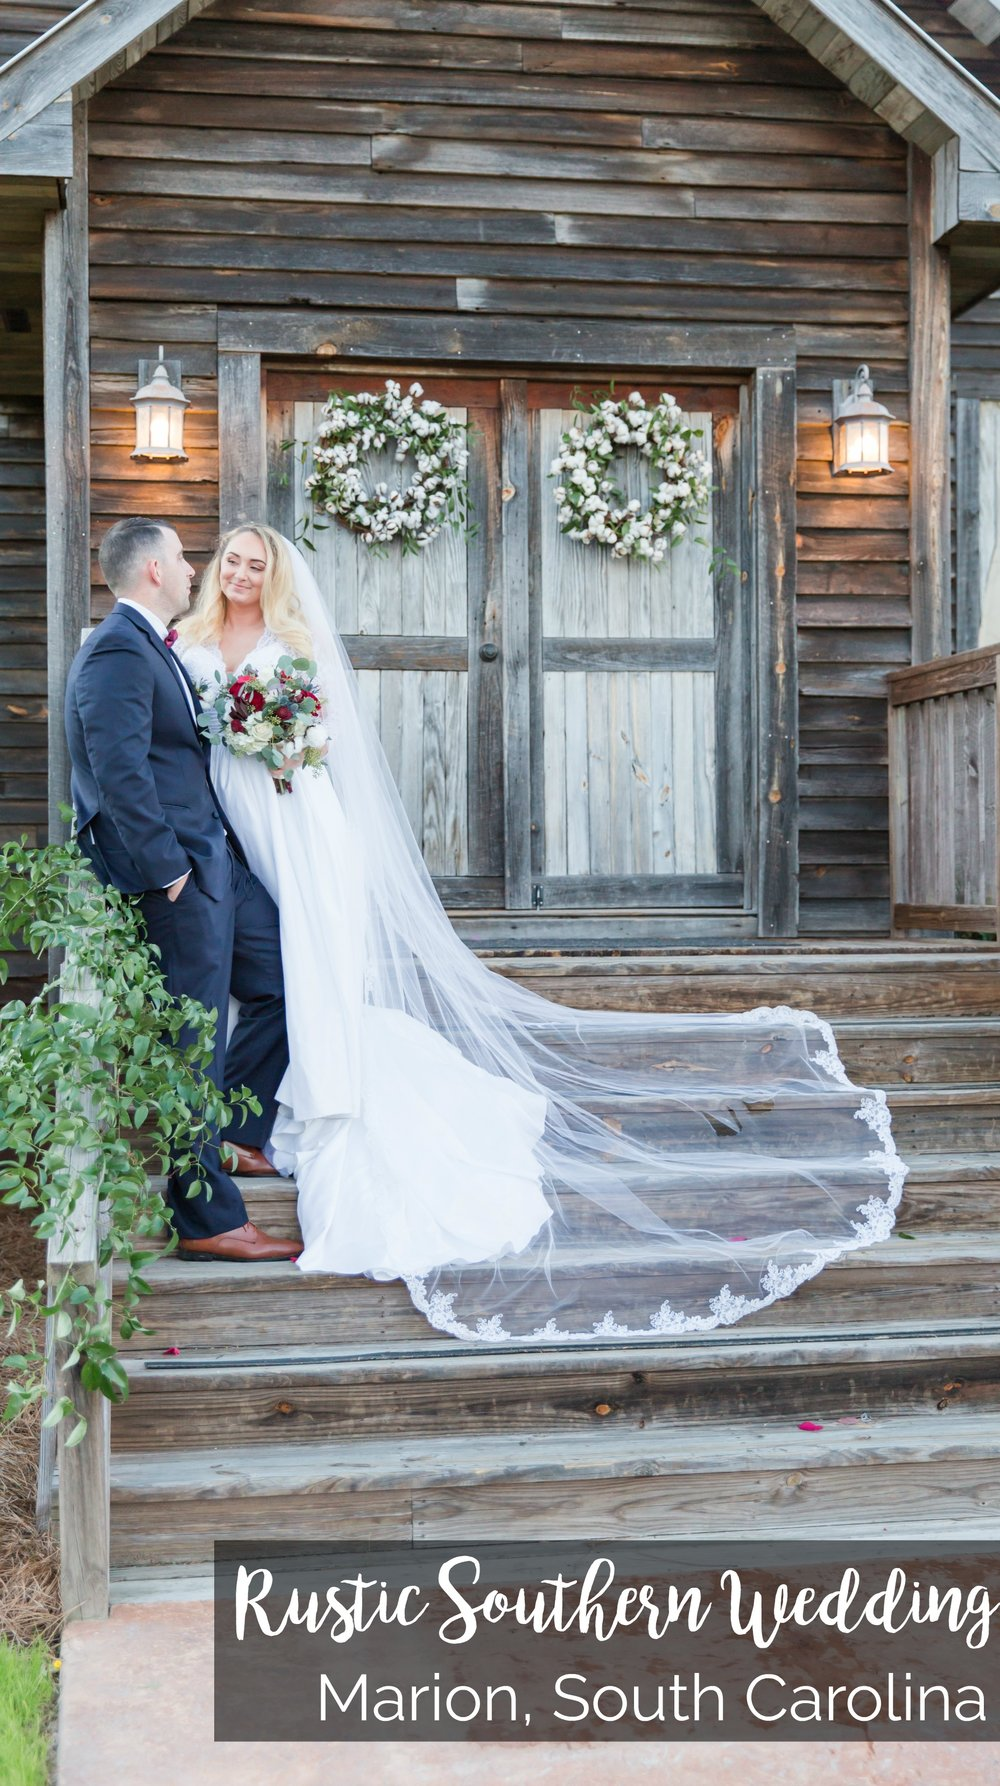 Charity and Kevin: Rustic Southern Wedding at Hidden Acres, Marion, South Carolina | Palmetto State Weddings | barn venues South Carolina | red and navy wedding | cotton themed wedding